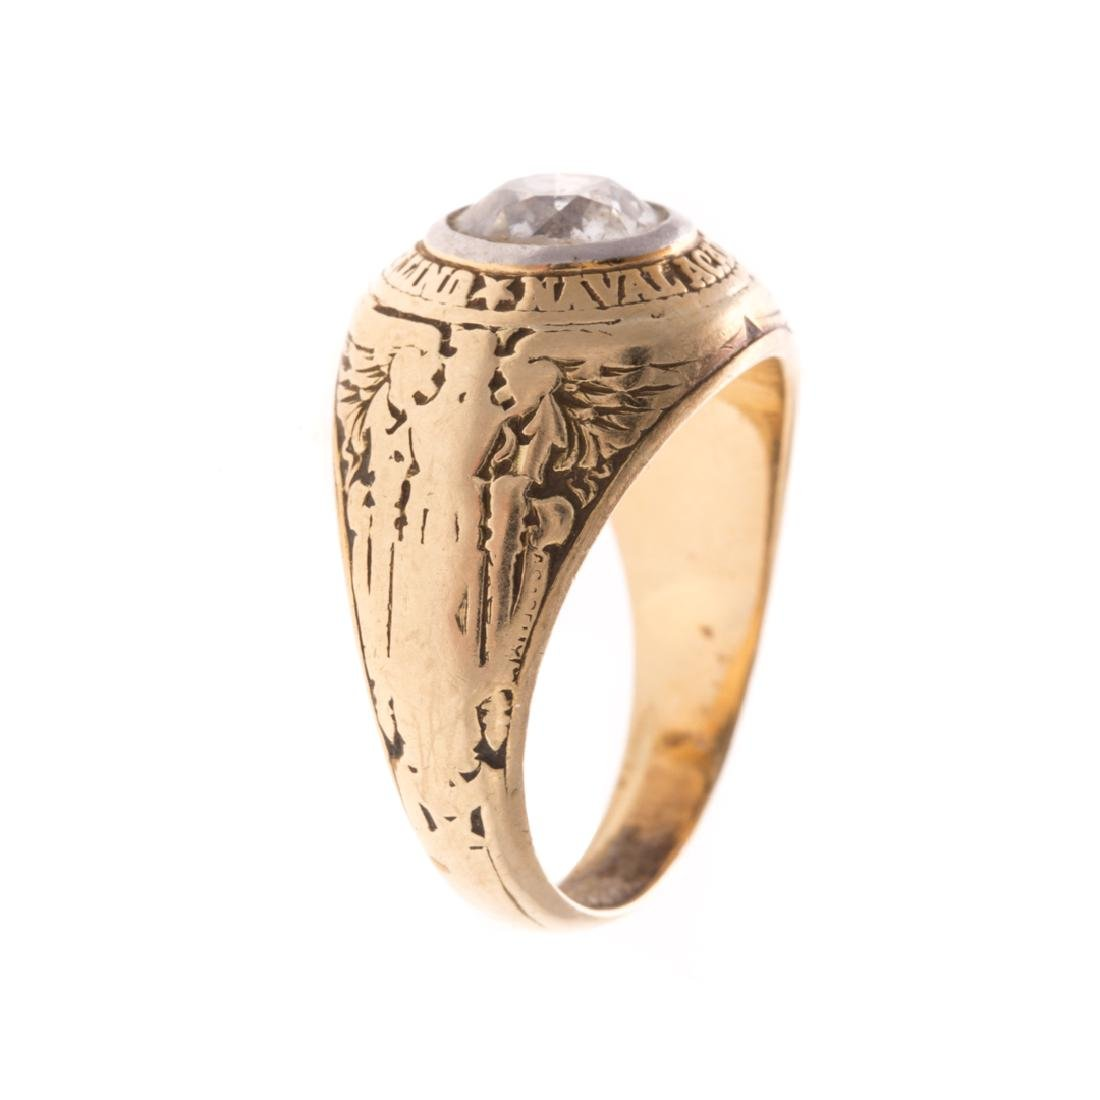 A Lady's Miniature US Naval Academy Ring in 14K - 2